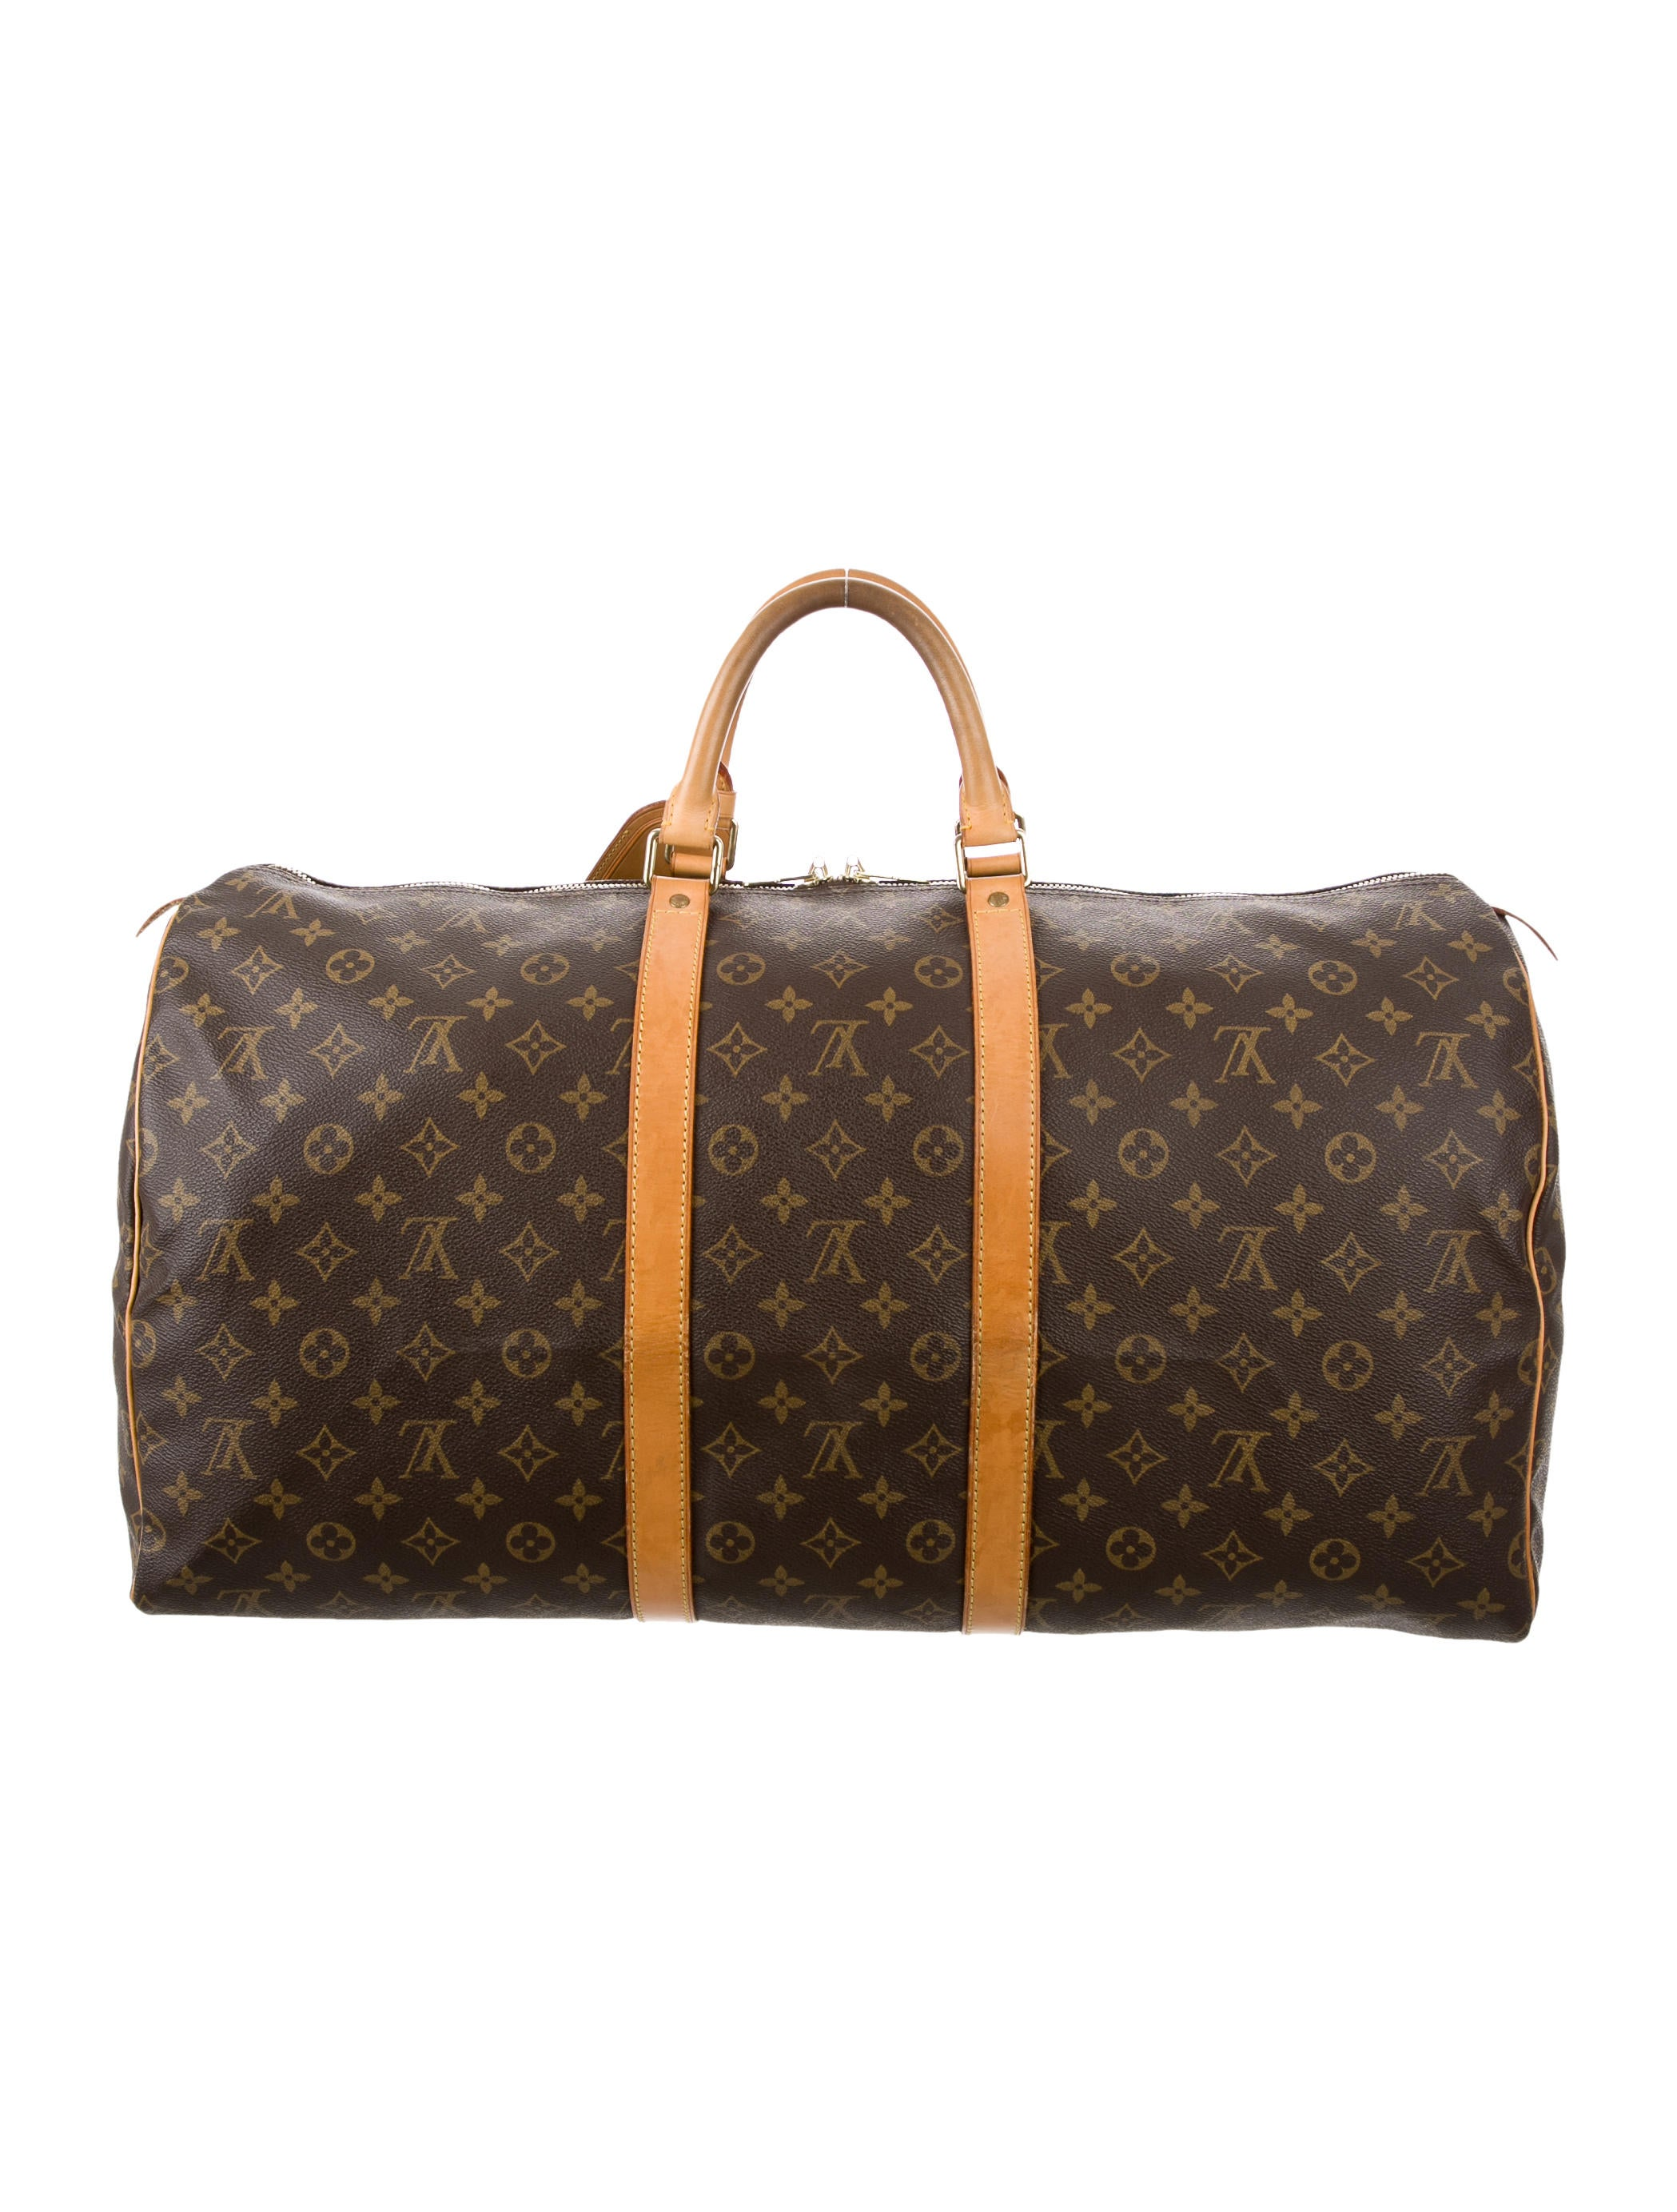 louis vuitton monogram keepall 55 bags lou121577 the. Black Bedroom Furniture Sets. Home Design Ideas